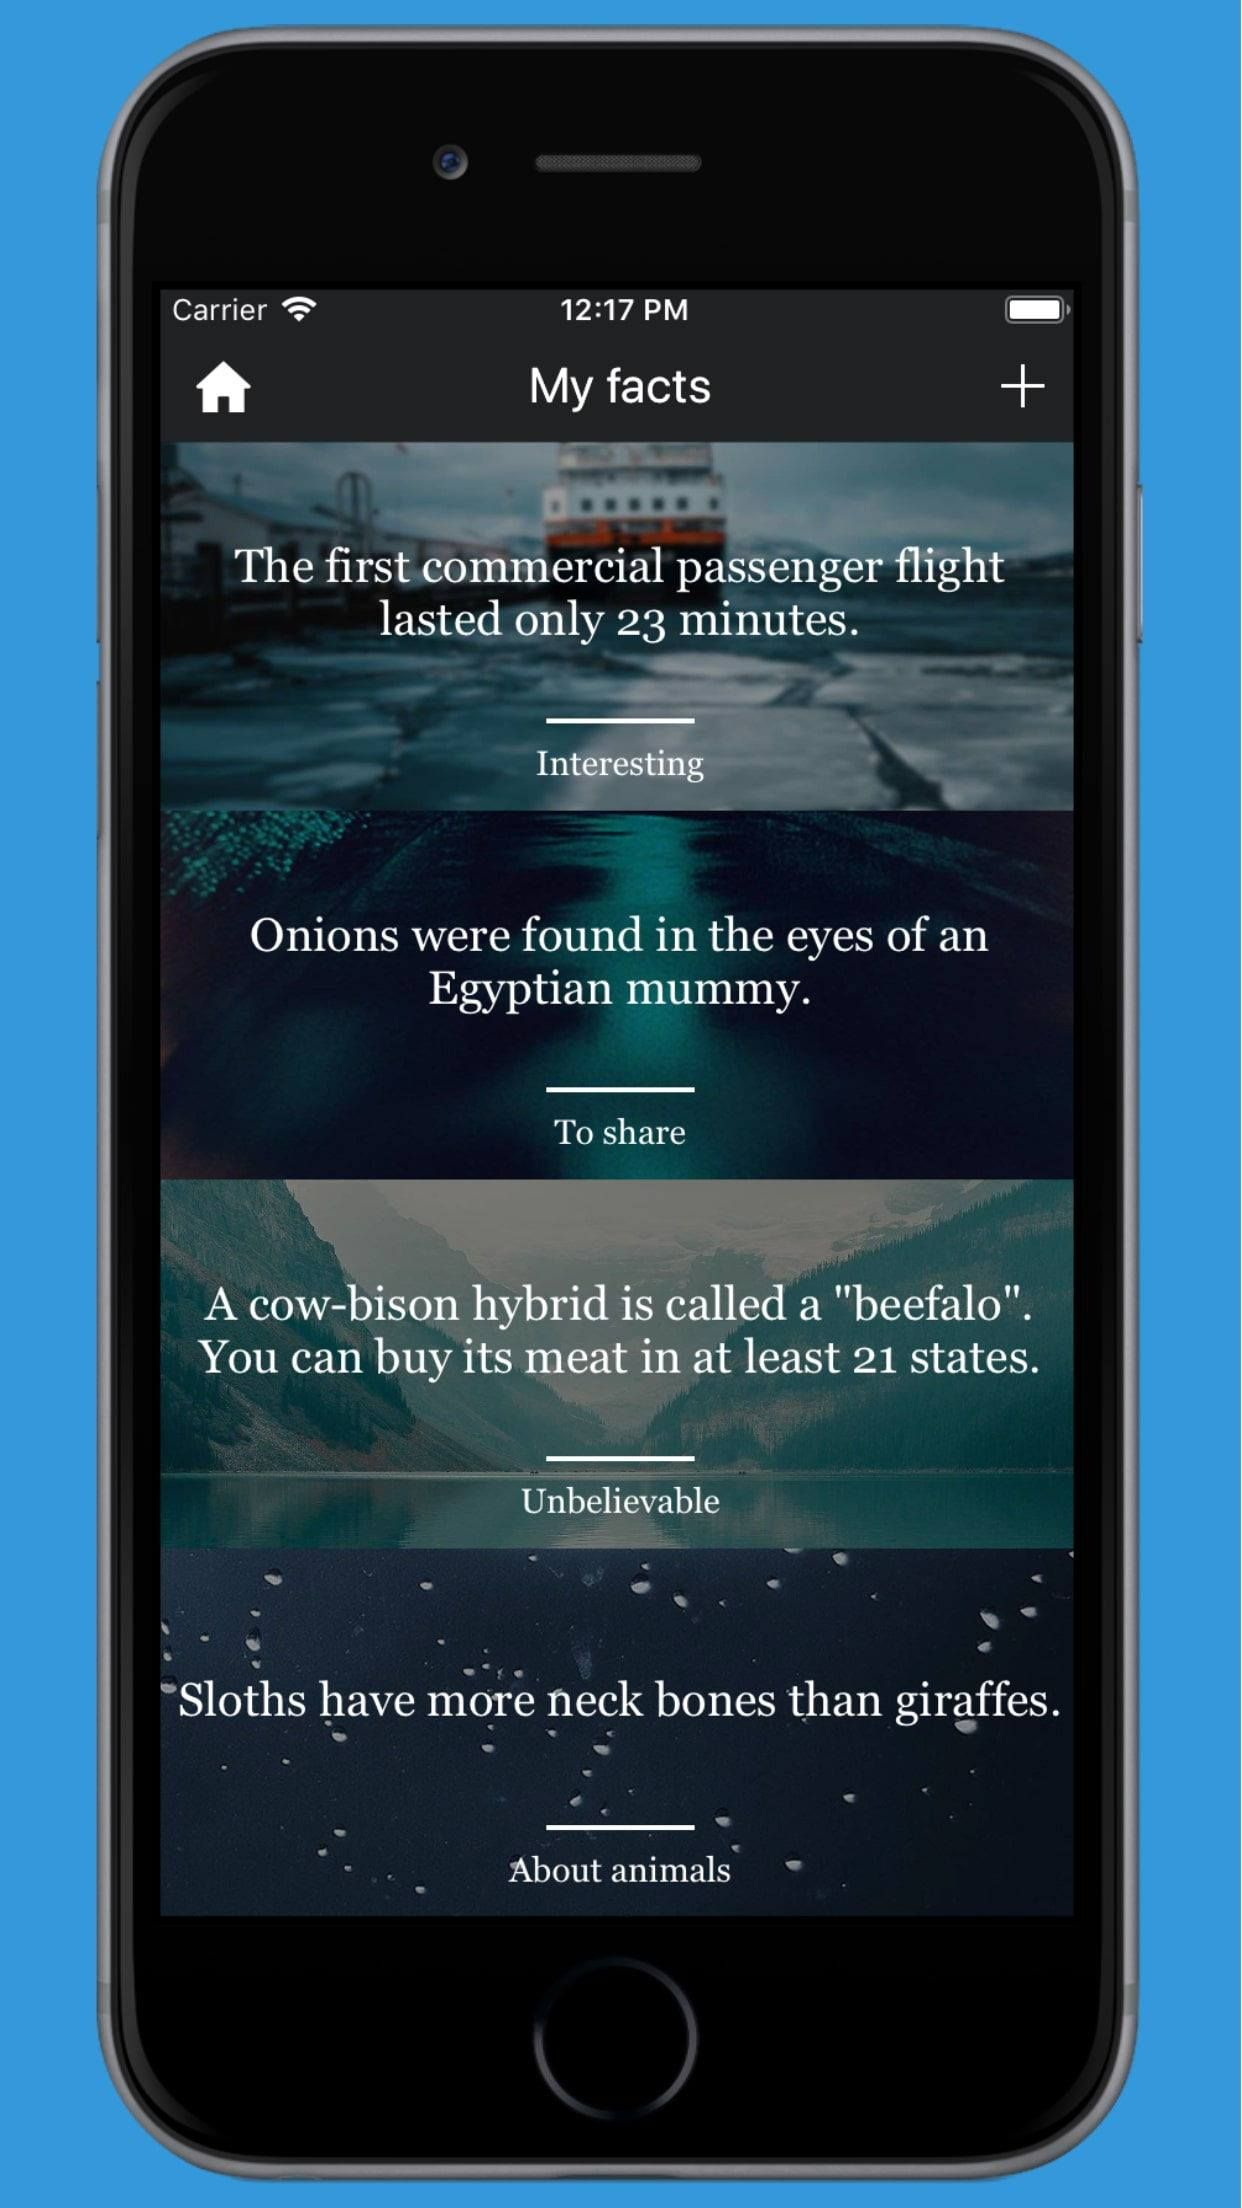 Facts World - iOS Facts and Notes Application Screenshot 7